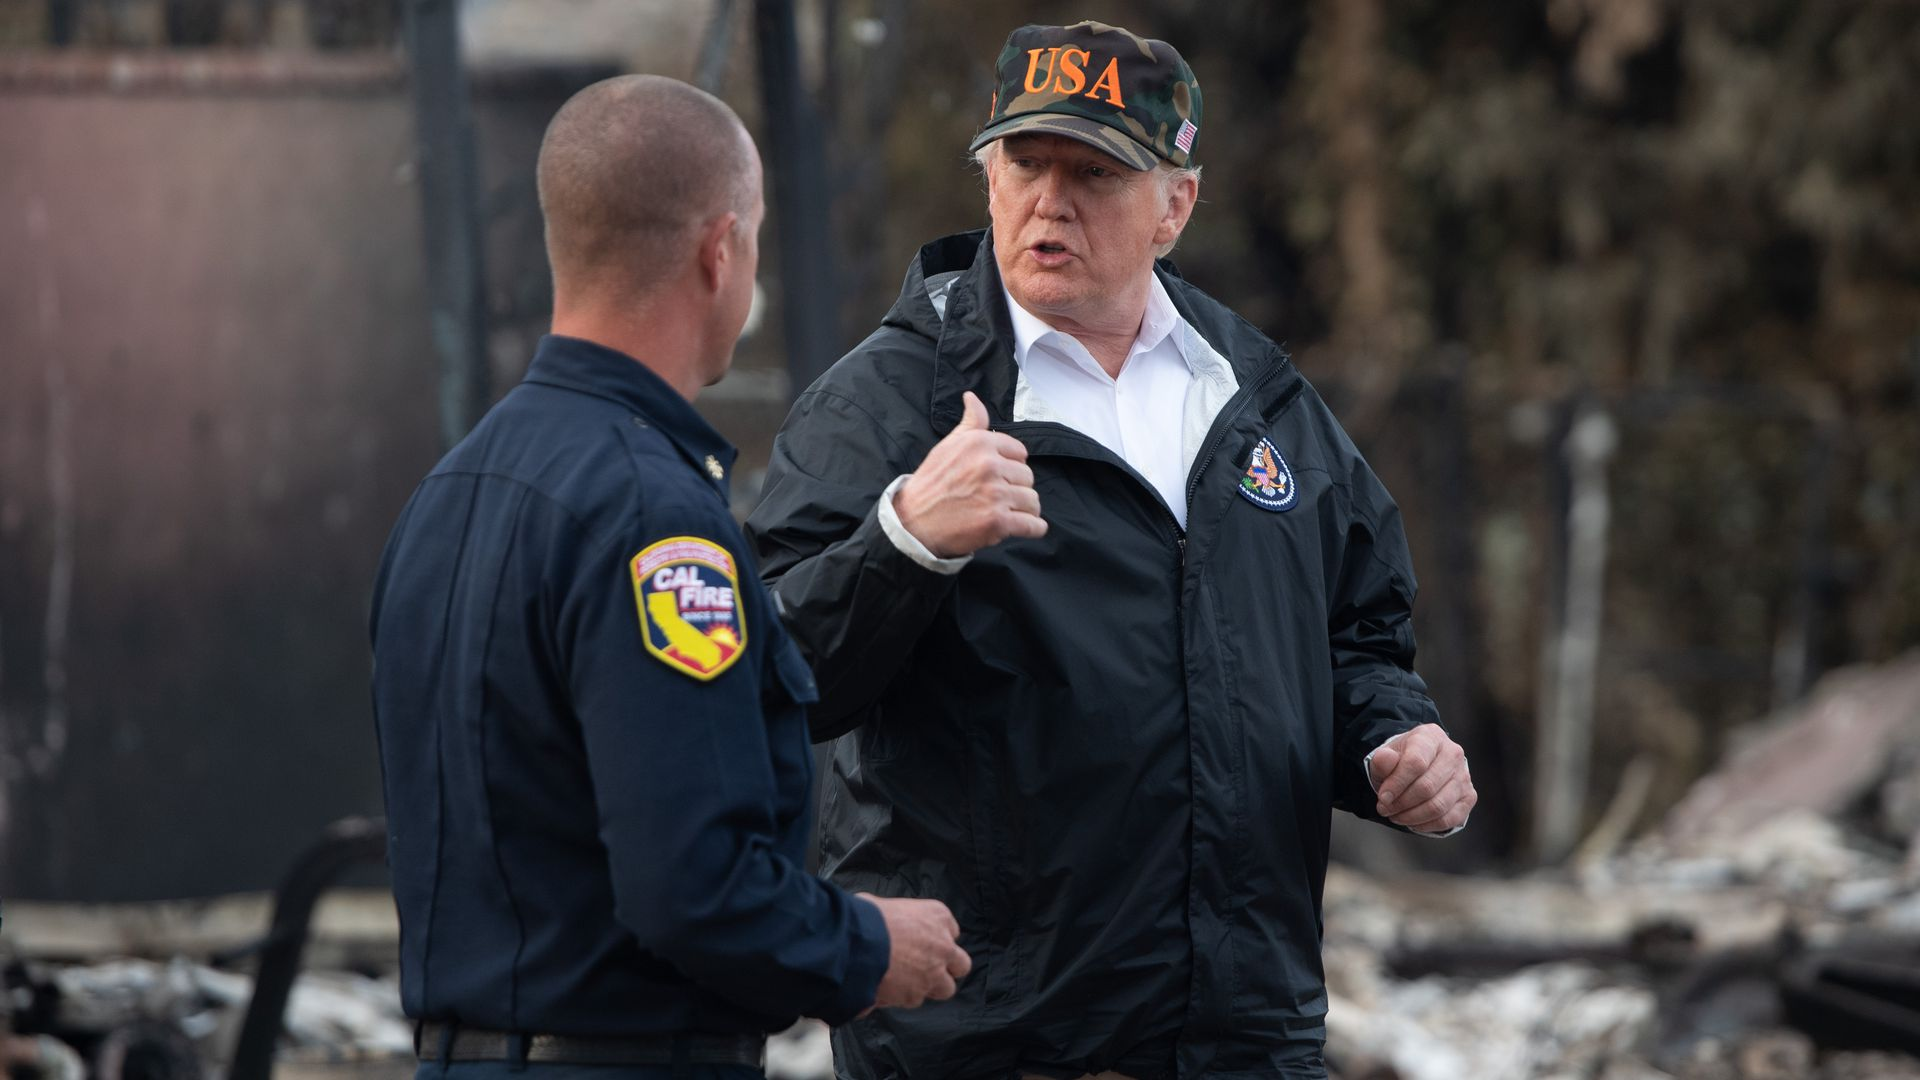 Trump with officer in california